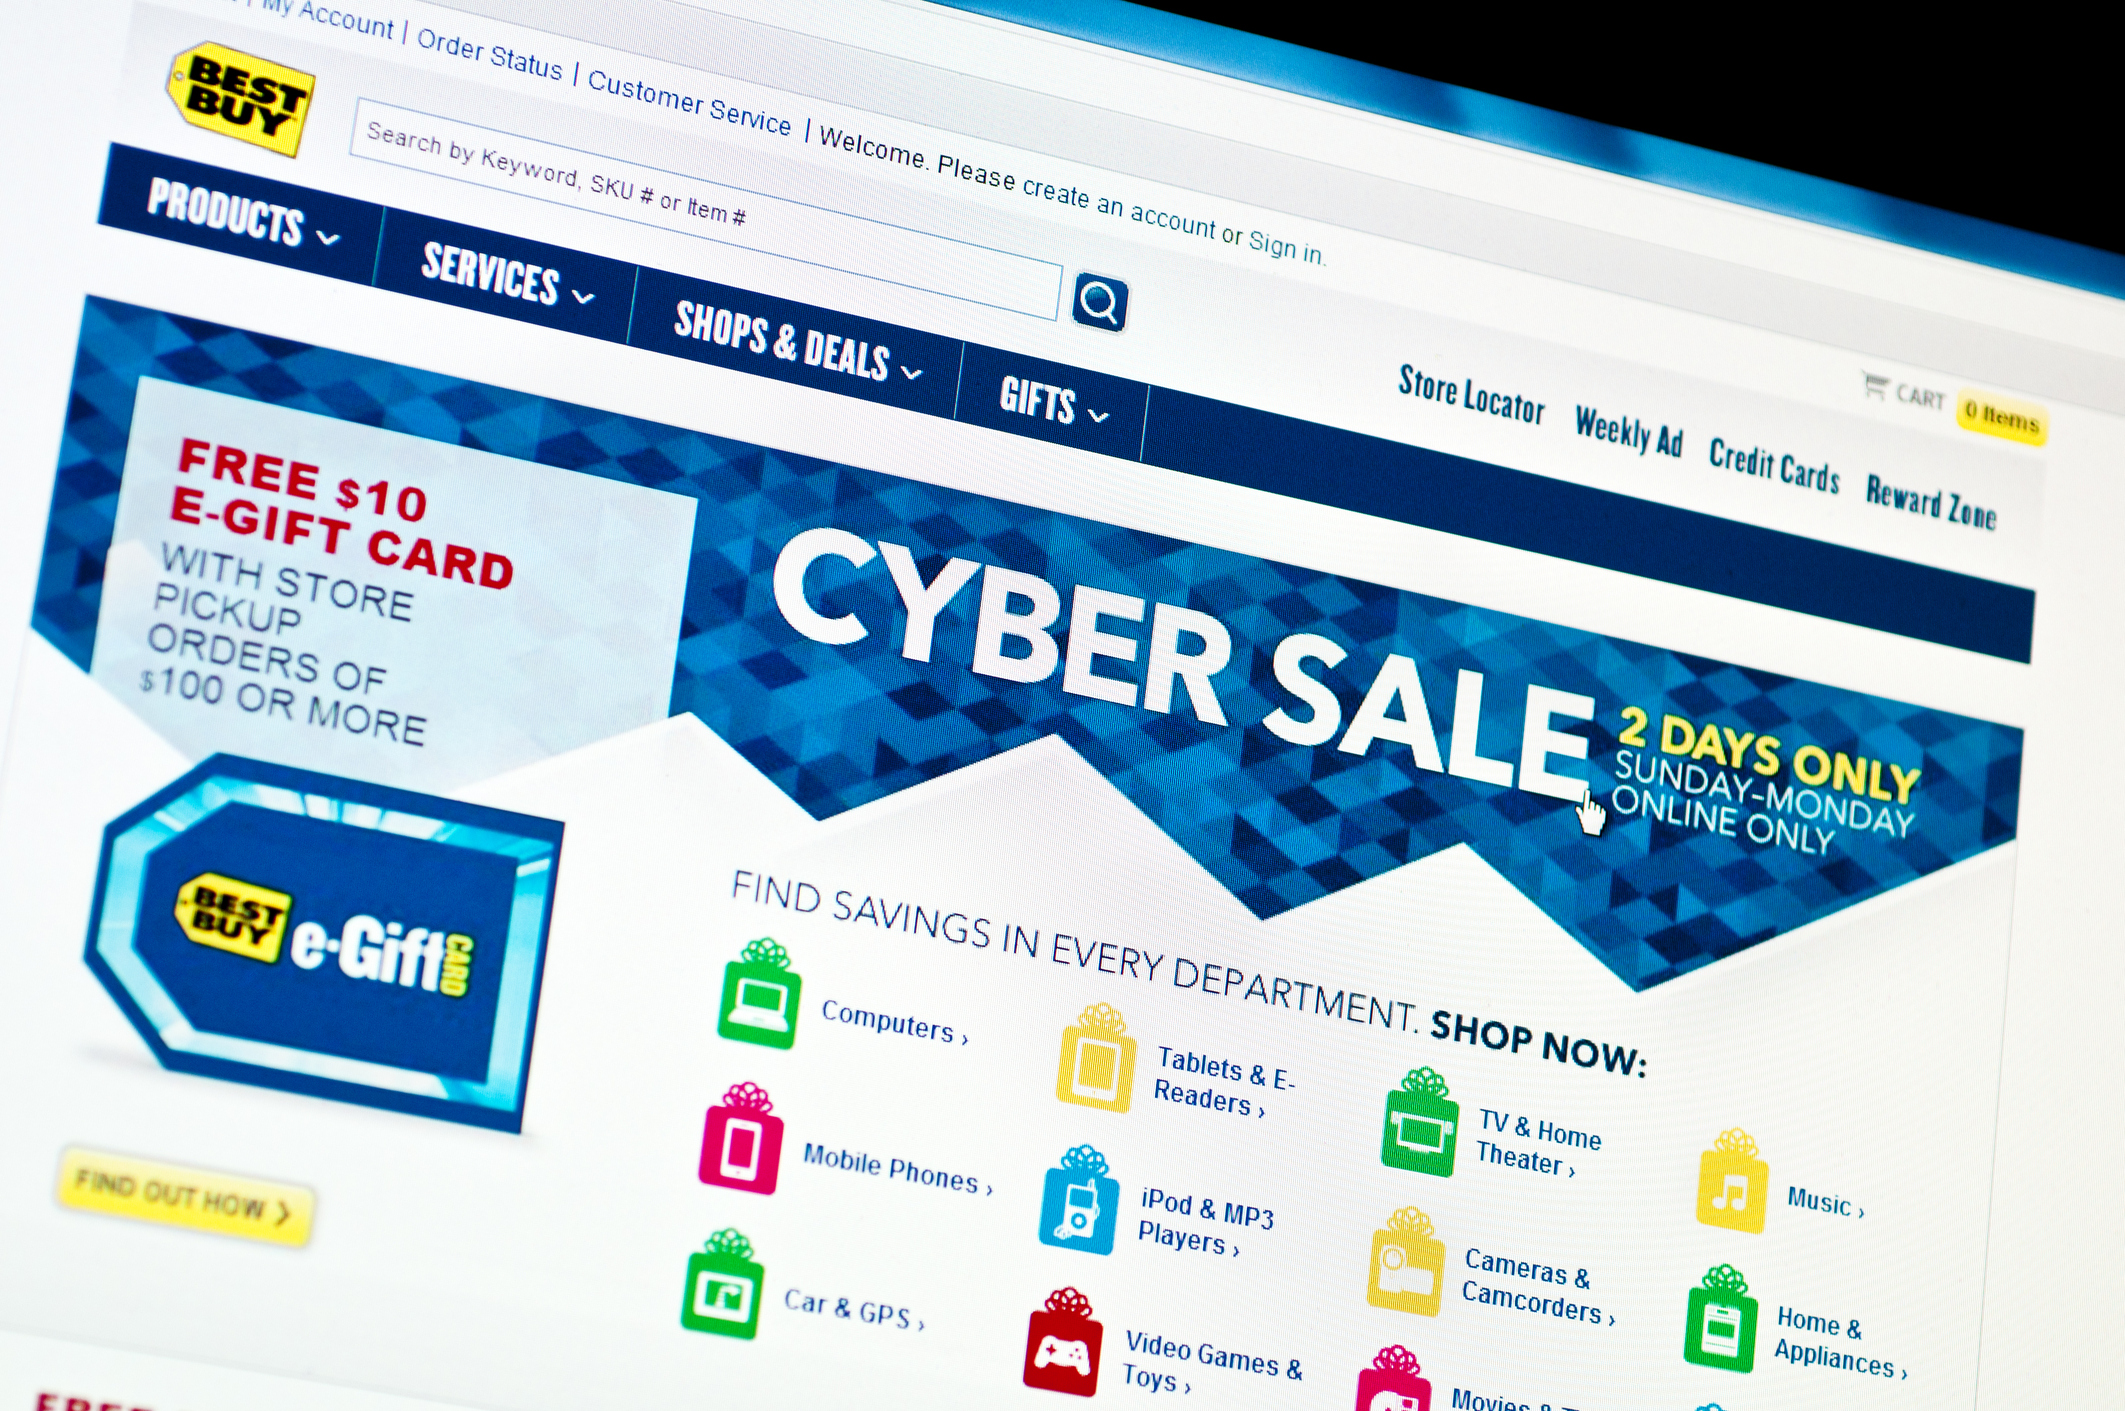 What to expect from best buy cyber monday sales in 2017 for Best websites to buy online